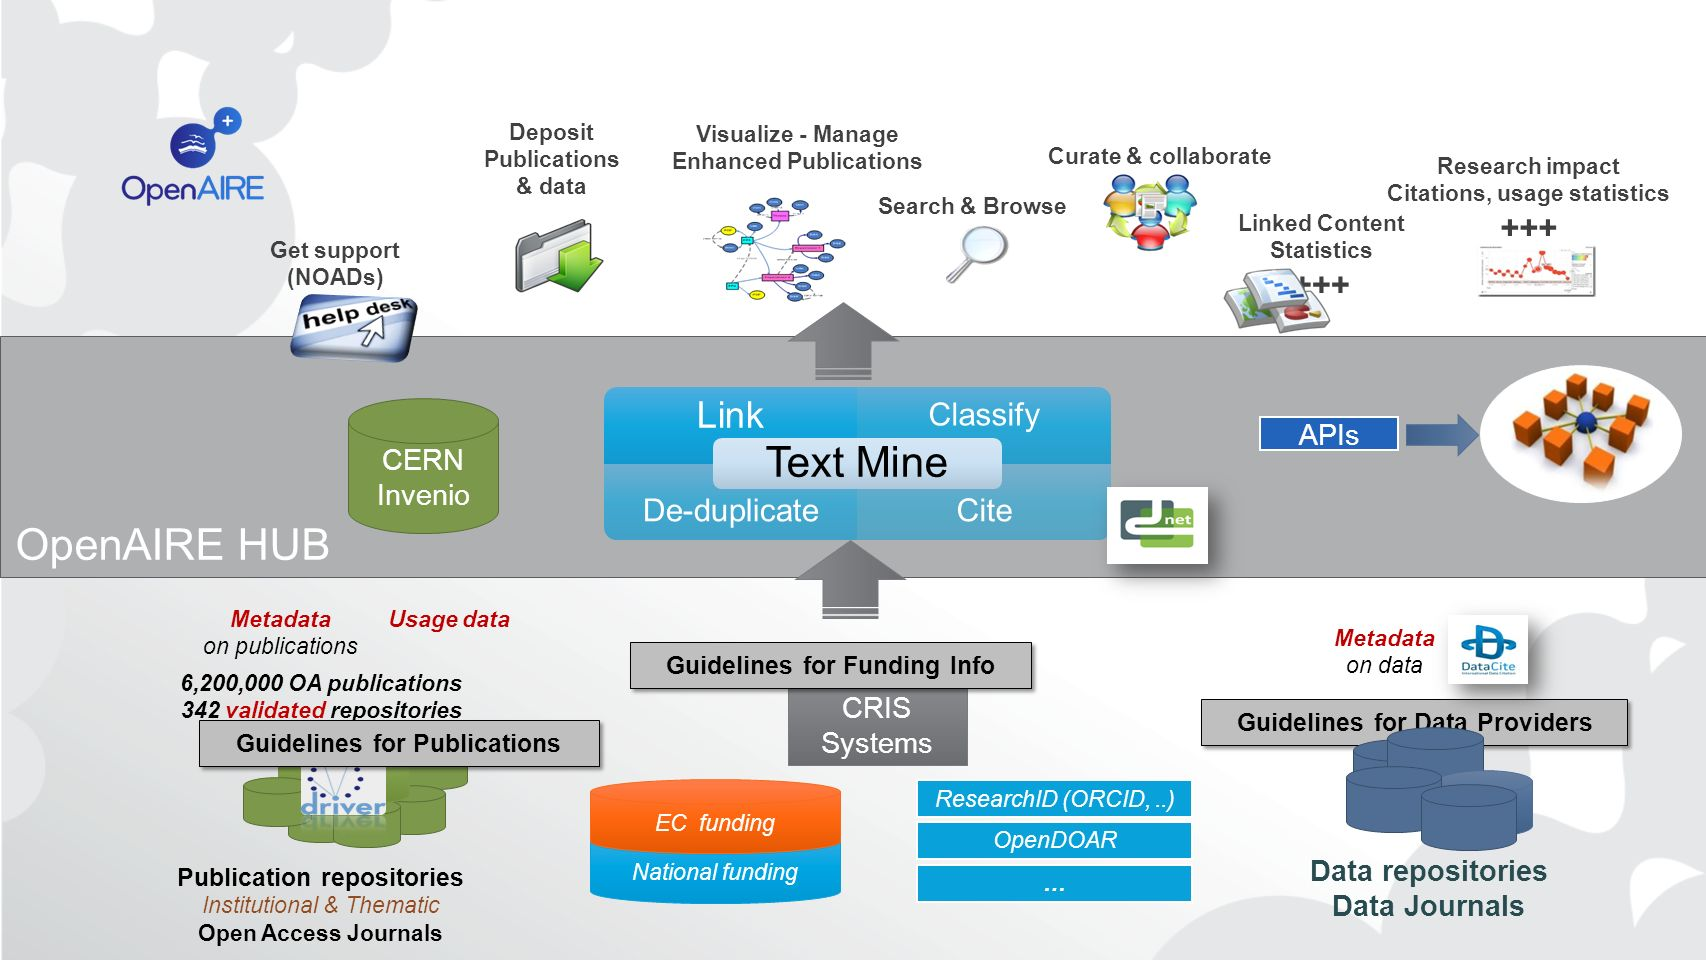 OpenAIRE HUB Text Mine Link Publications from OA repositories